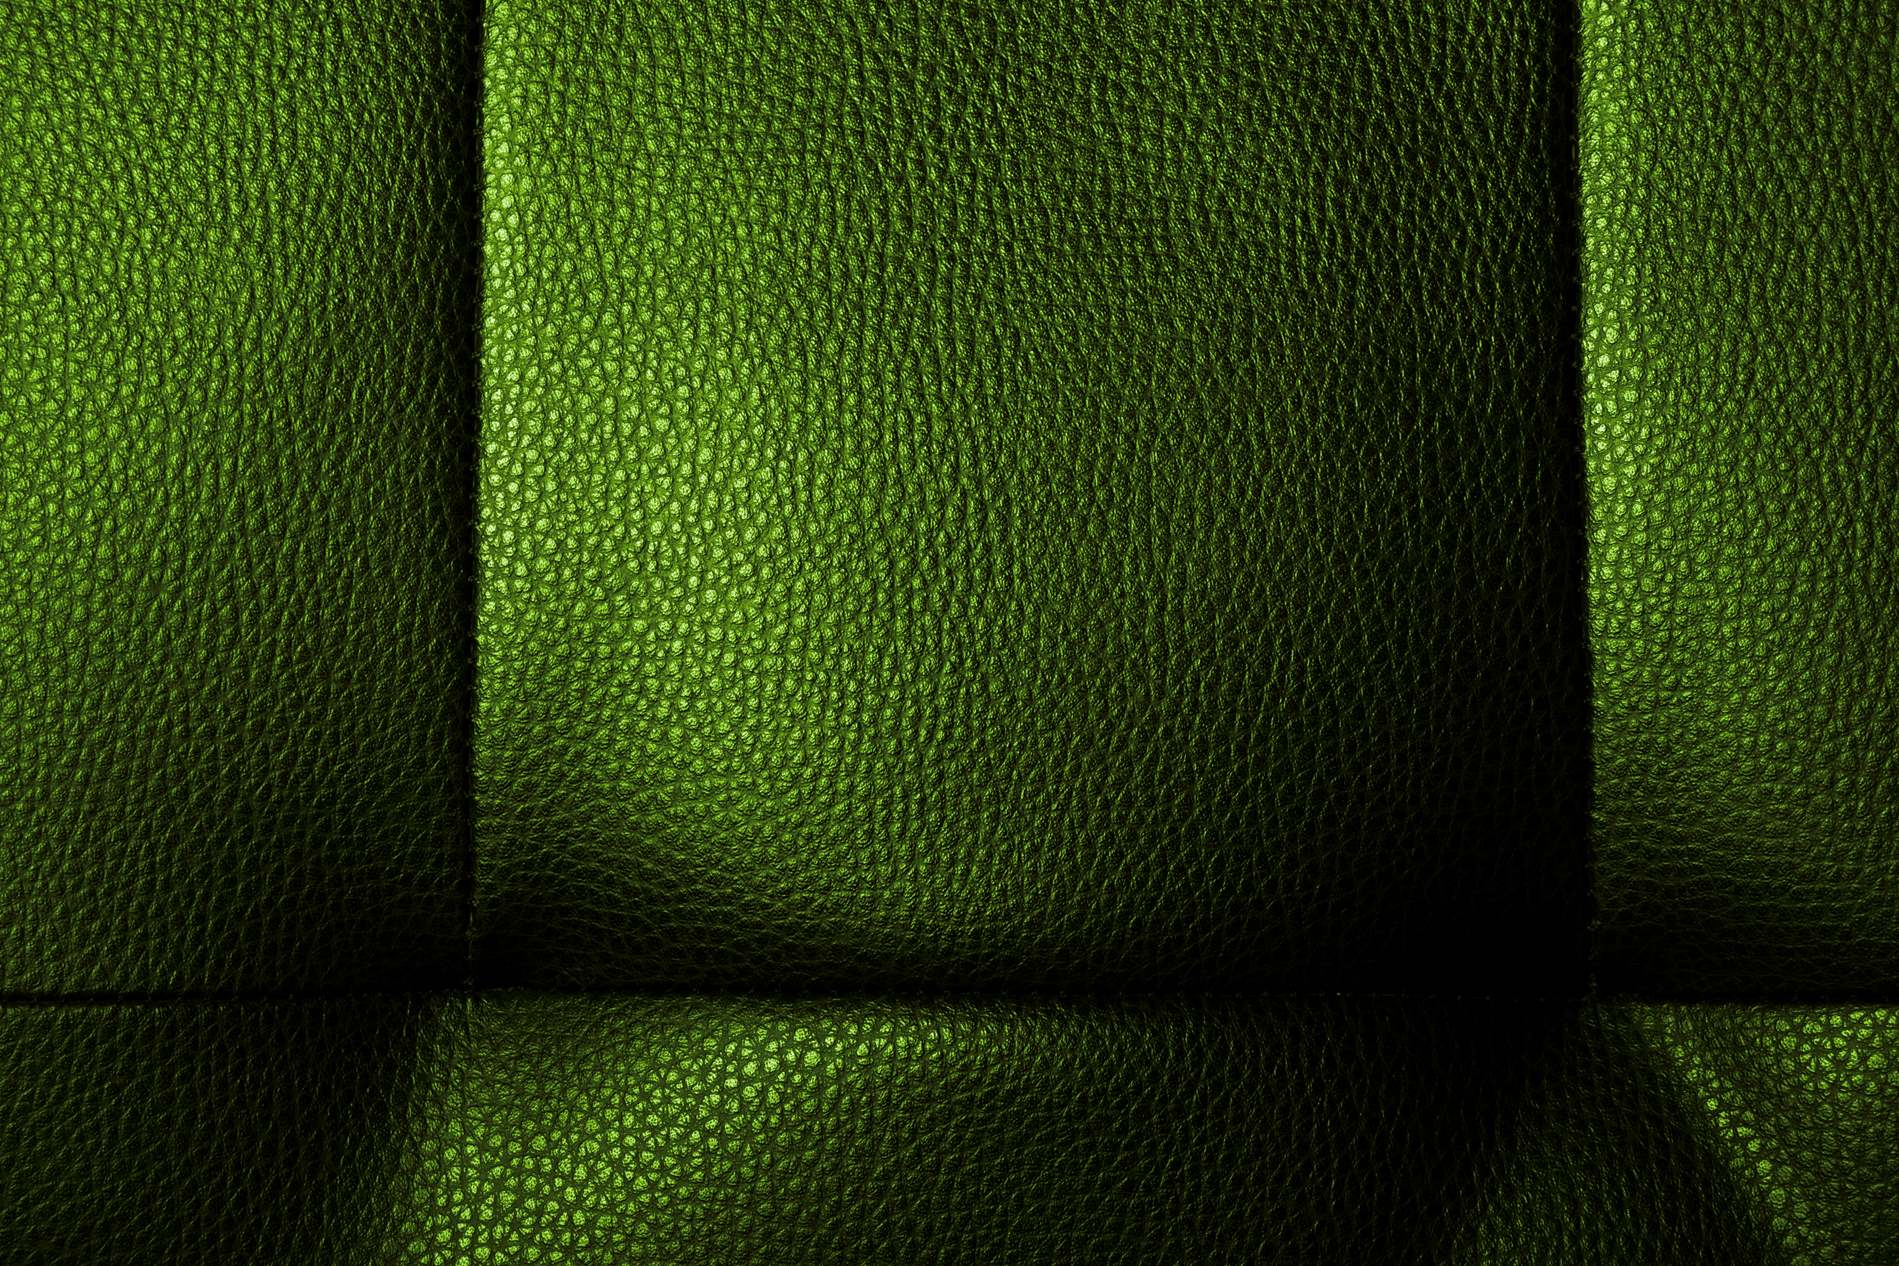 Green Couch Leather Texture Photohdx